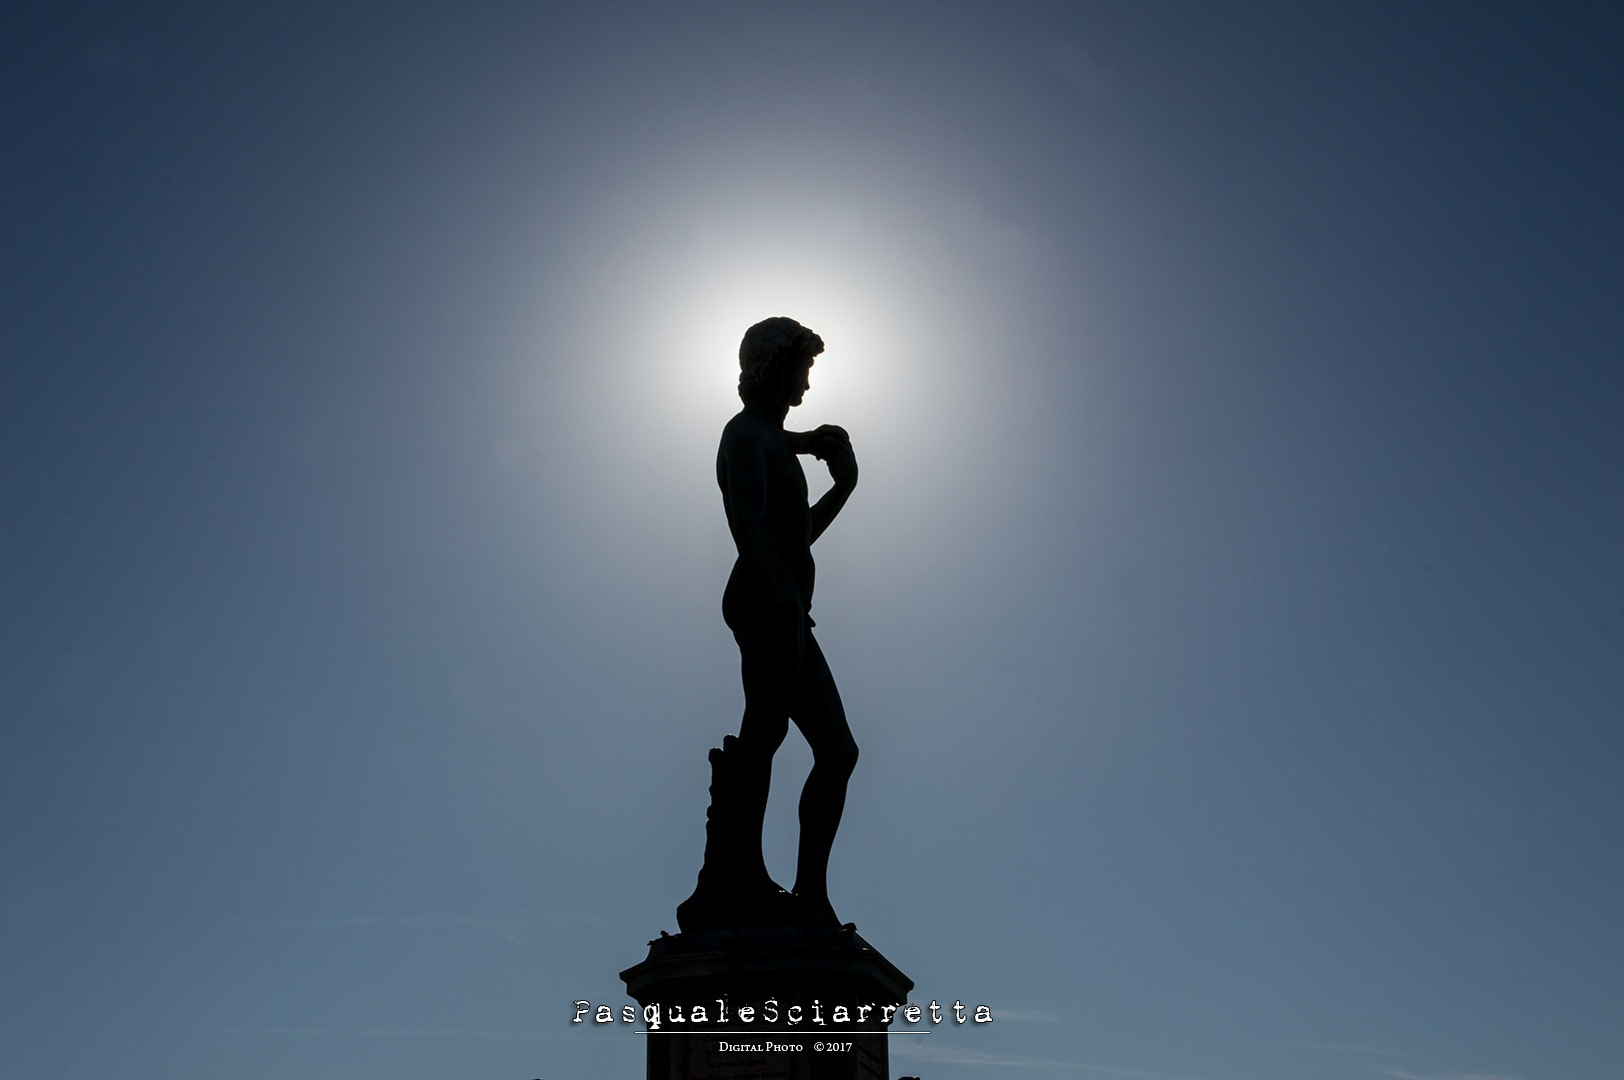 David by pasquale s.